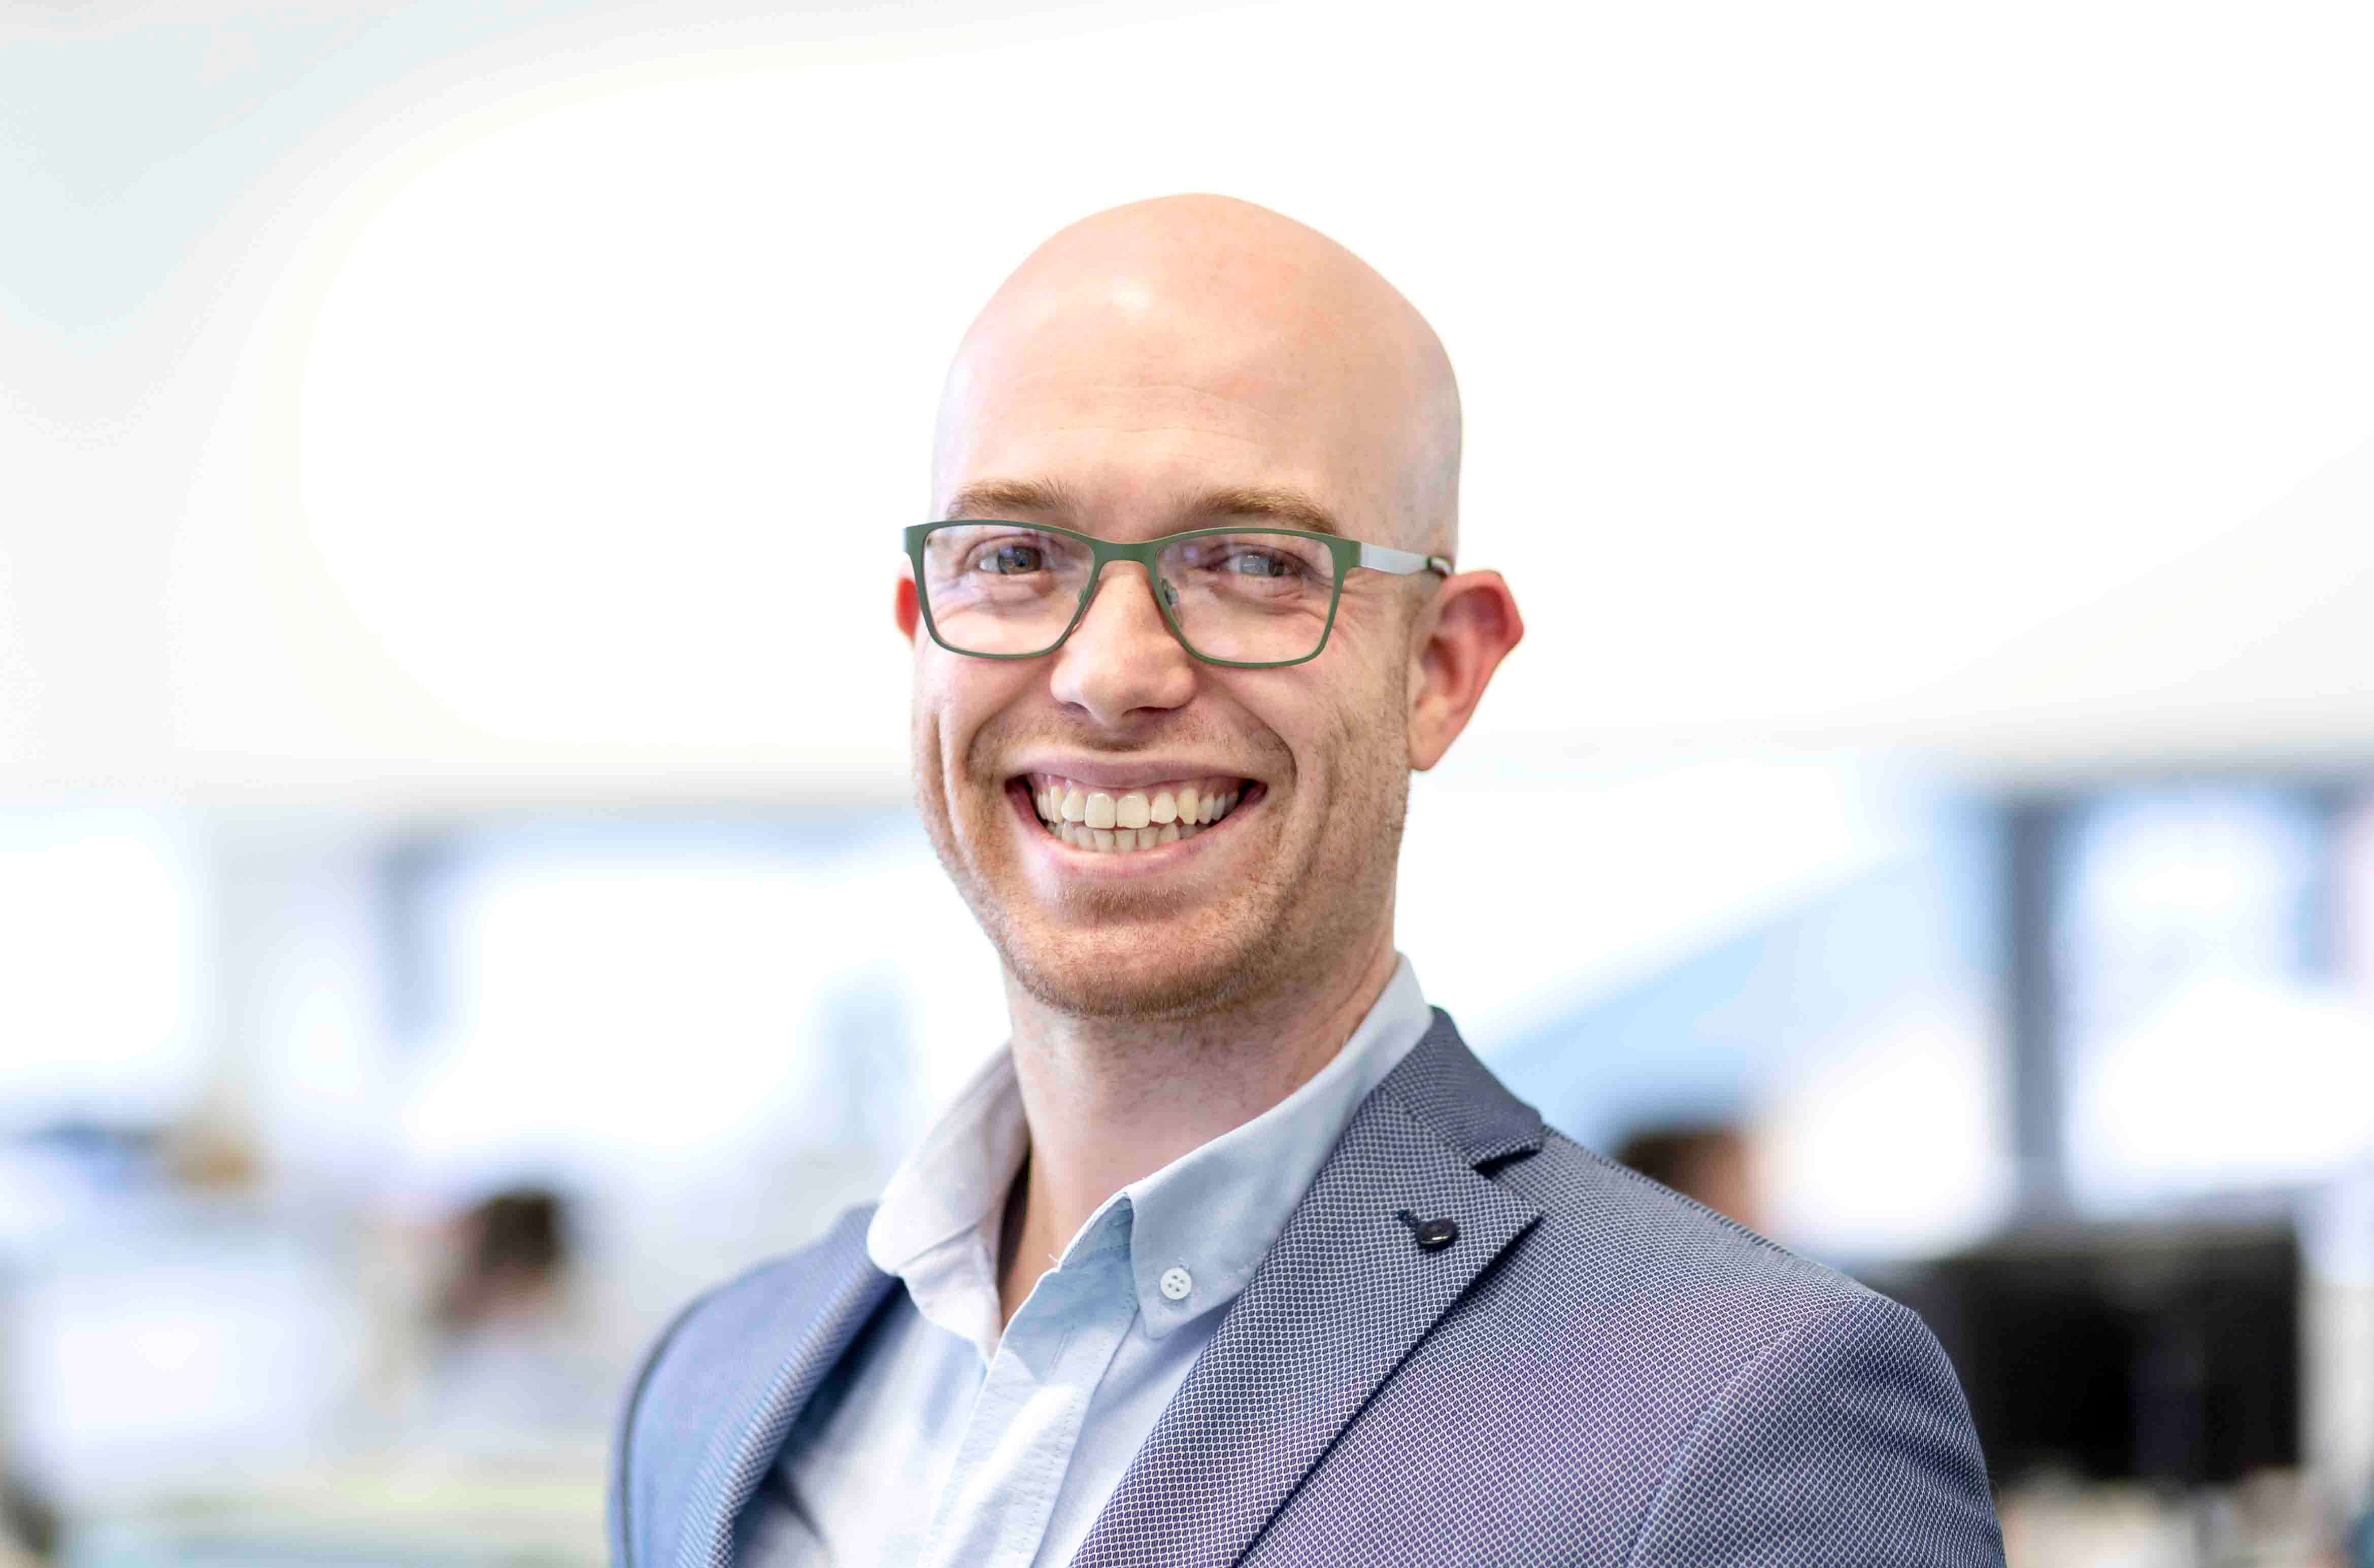 Image of Tom Wood, Creative Director at Peregrine Communications